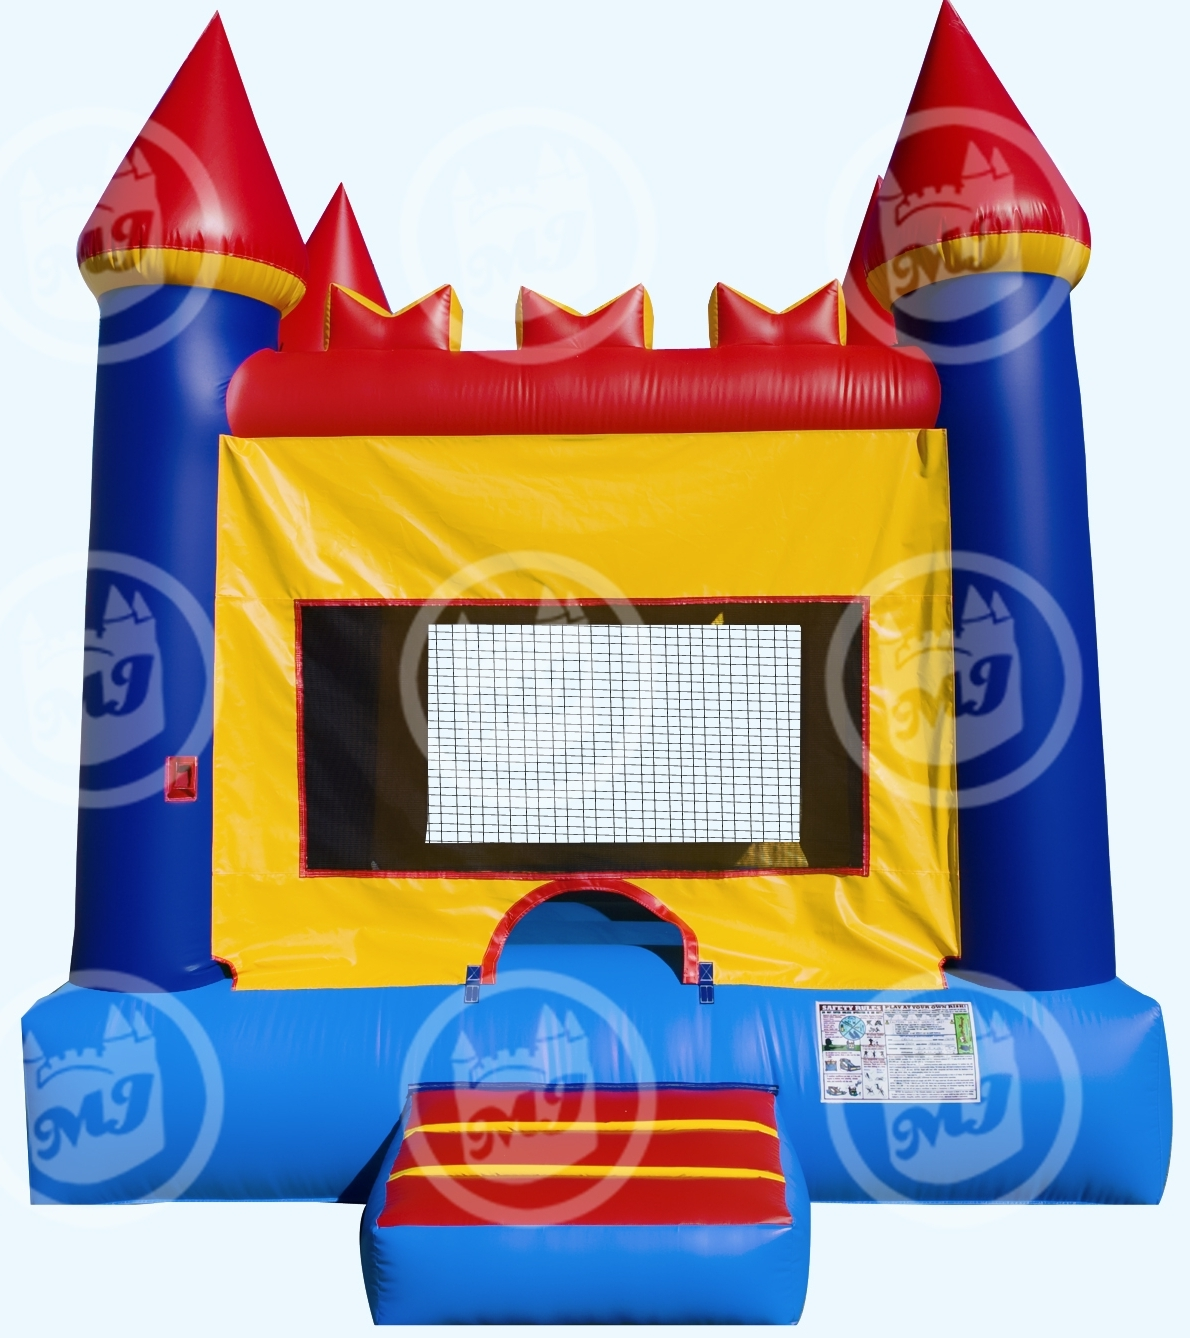 Union County Bounce House